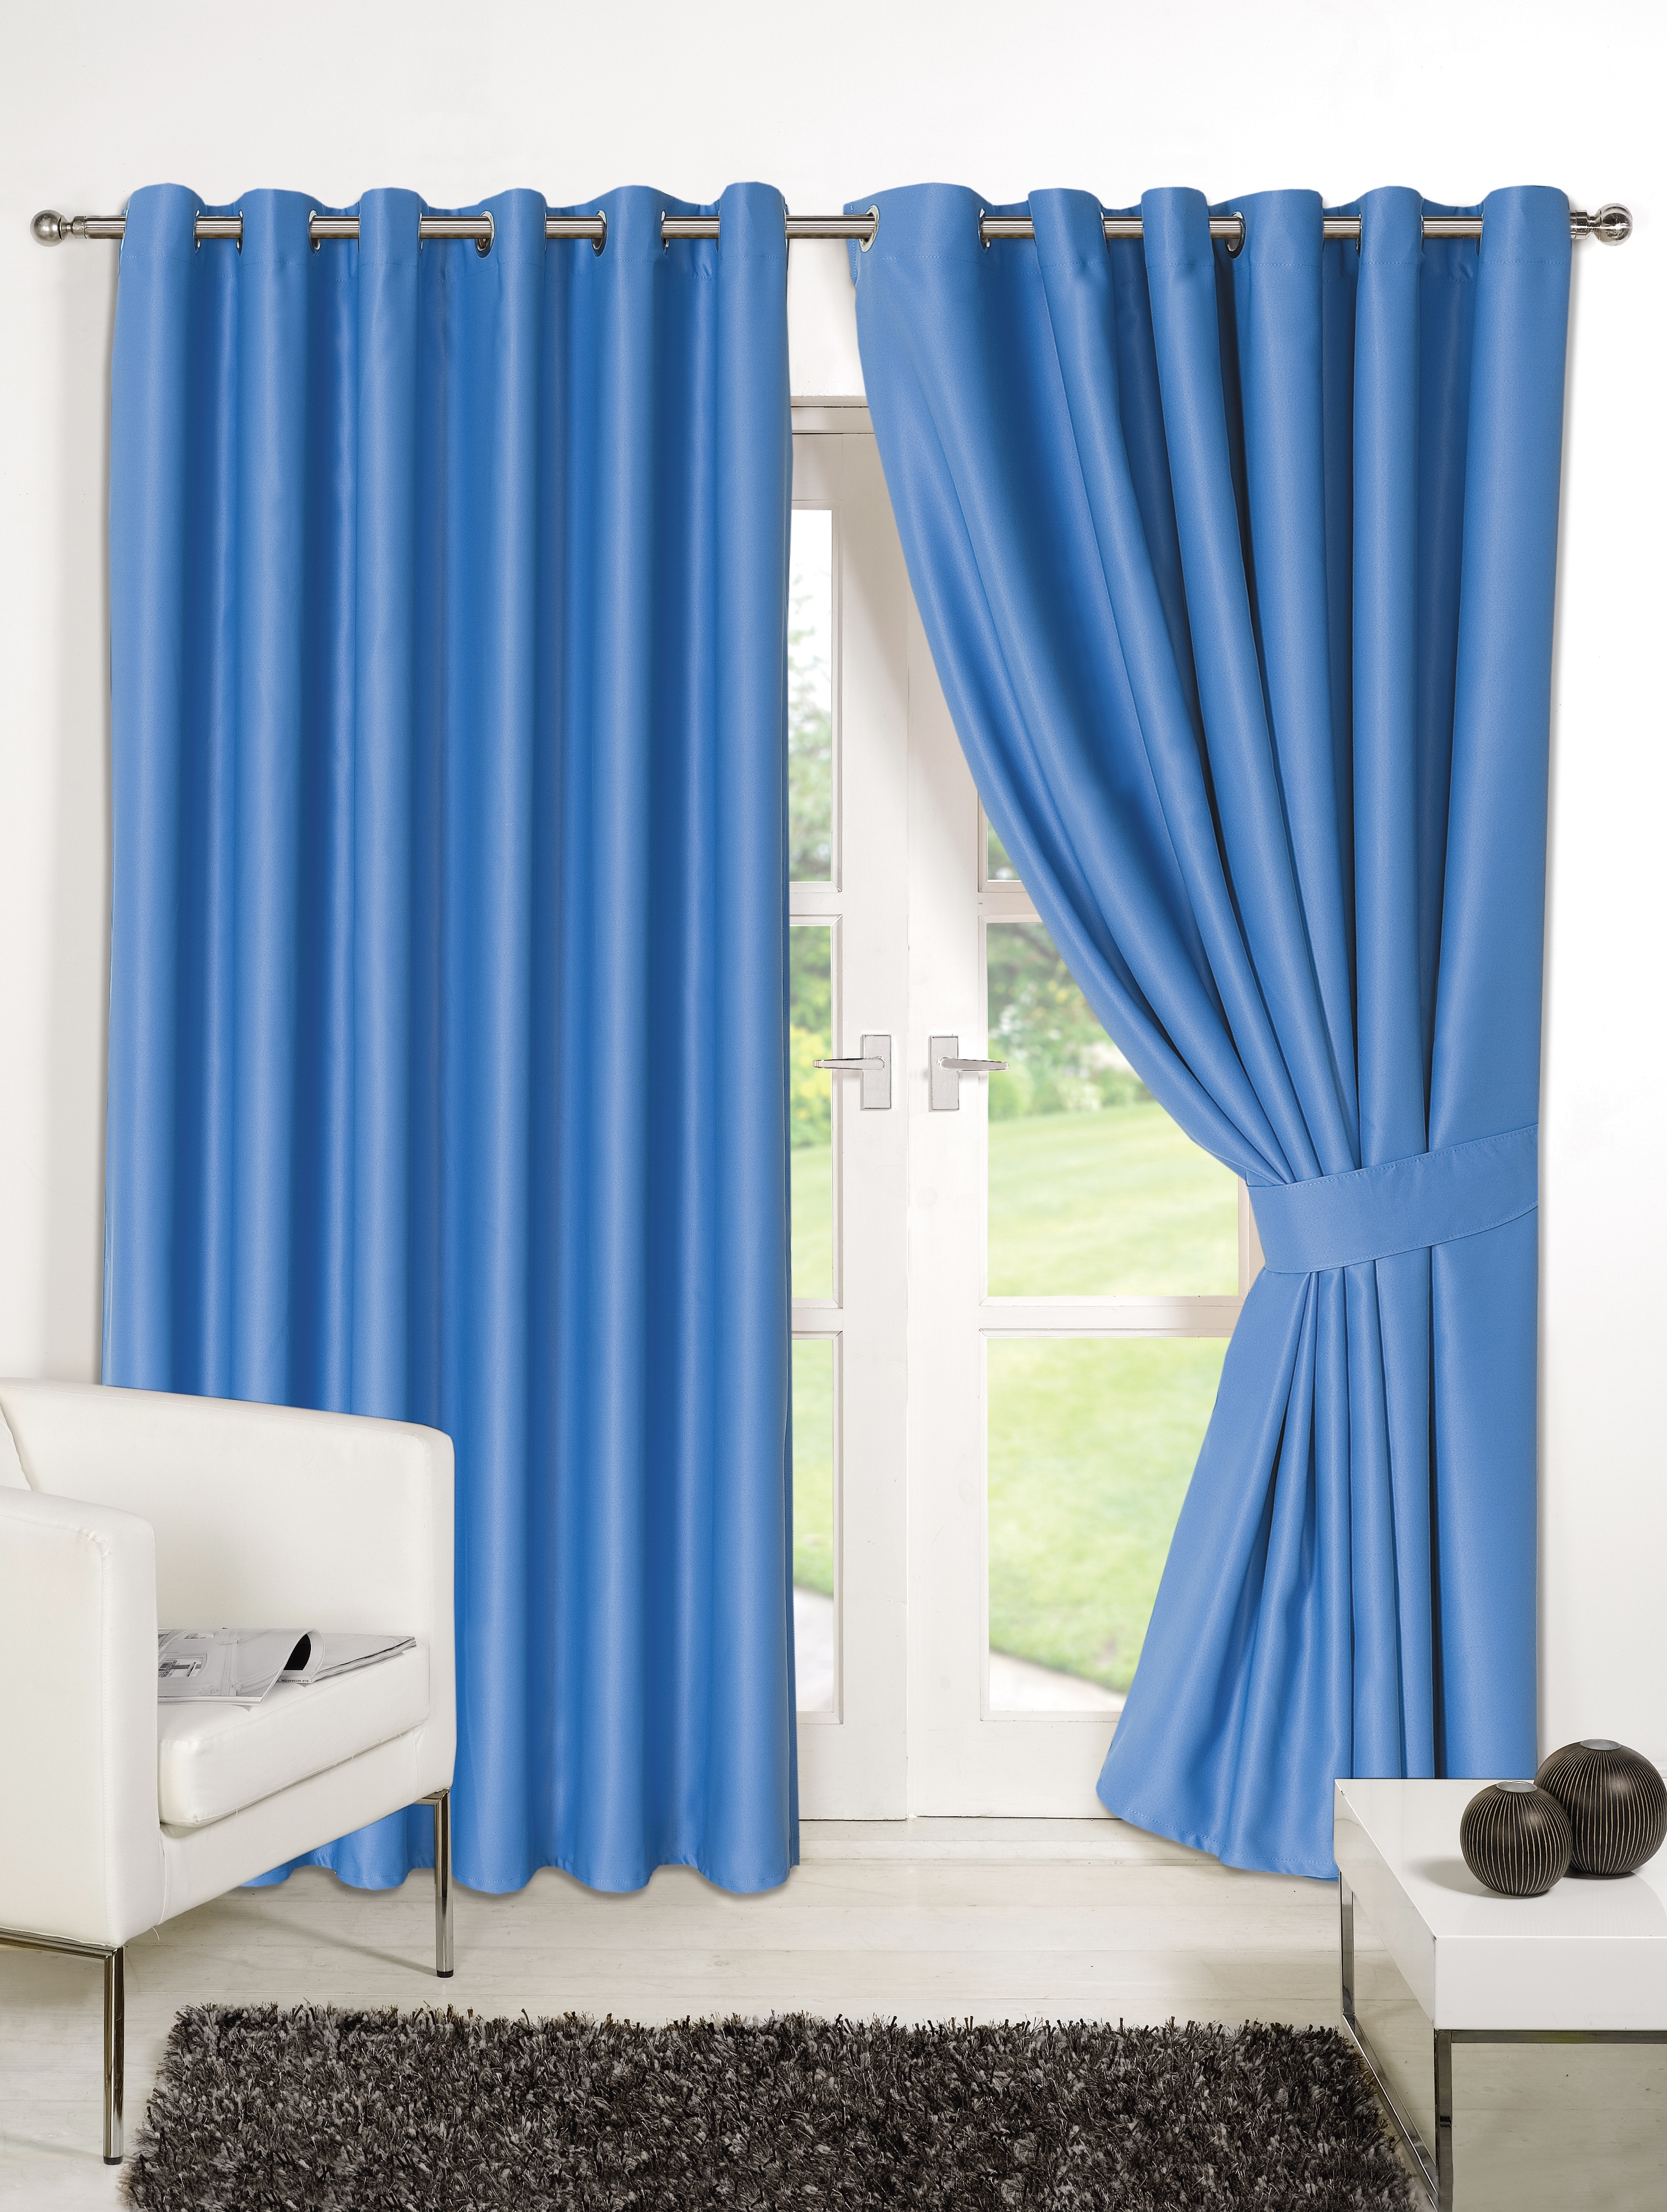 Home Furnishings Curtains Luxury Eyelet Blackout Curtains With Blue Blackout Curtains Eyelet (Image 9 of 15)